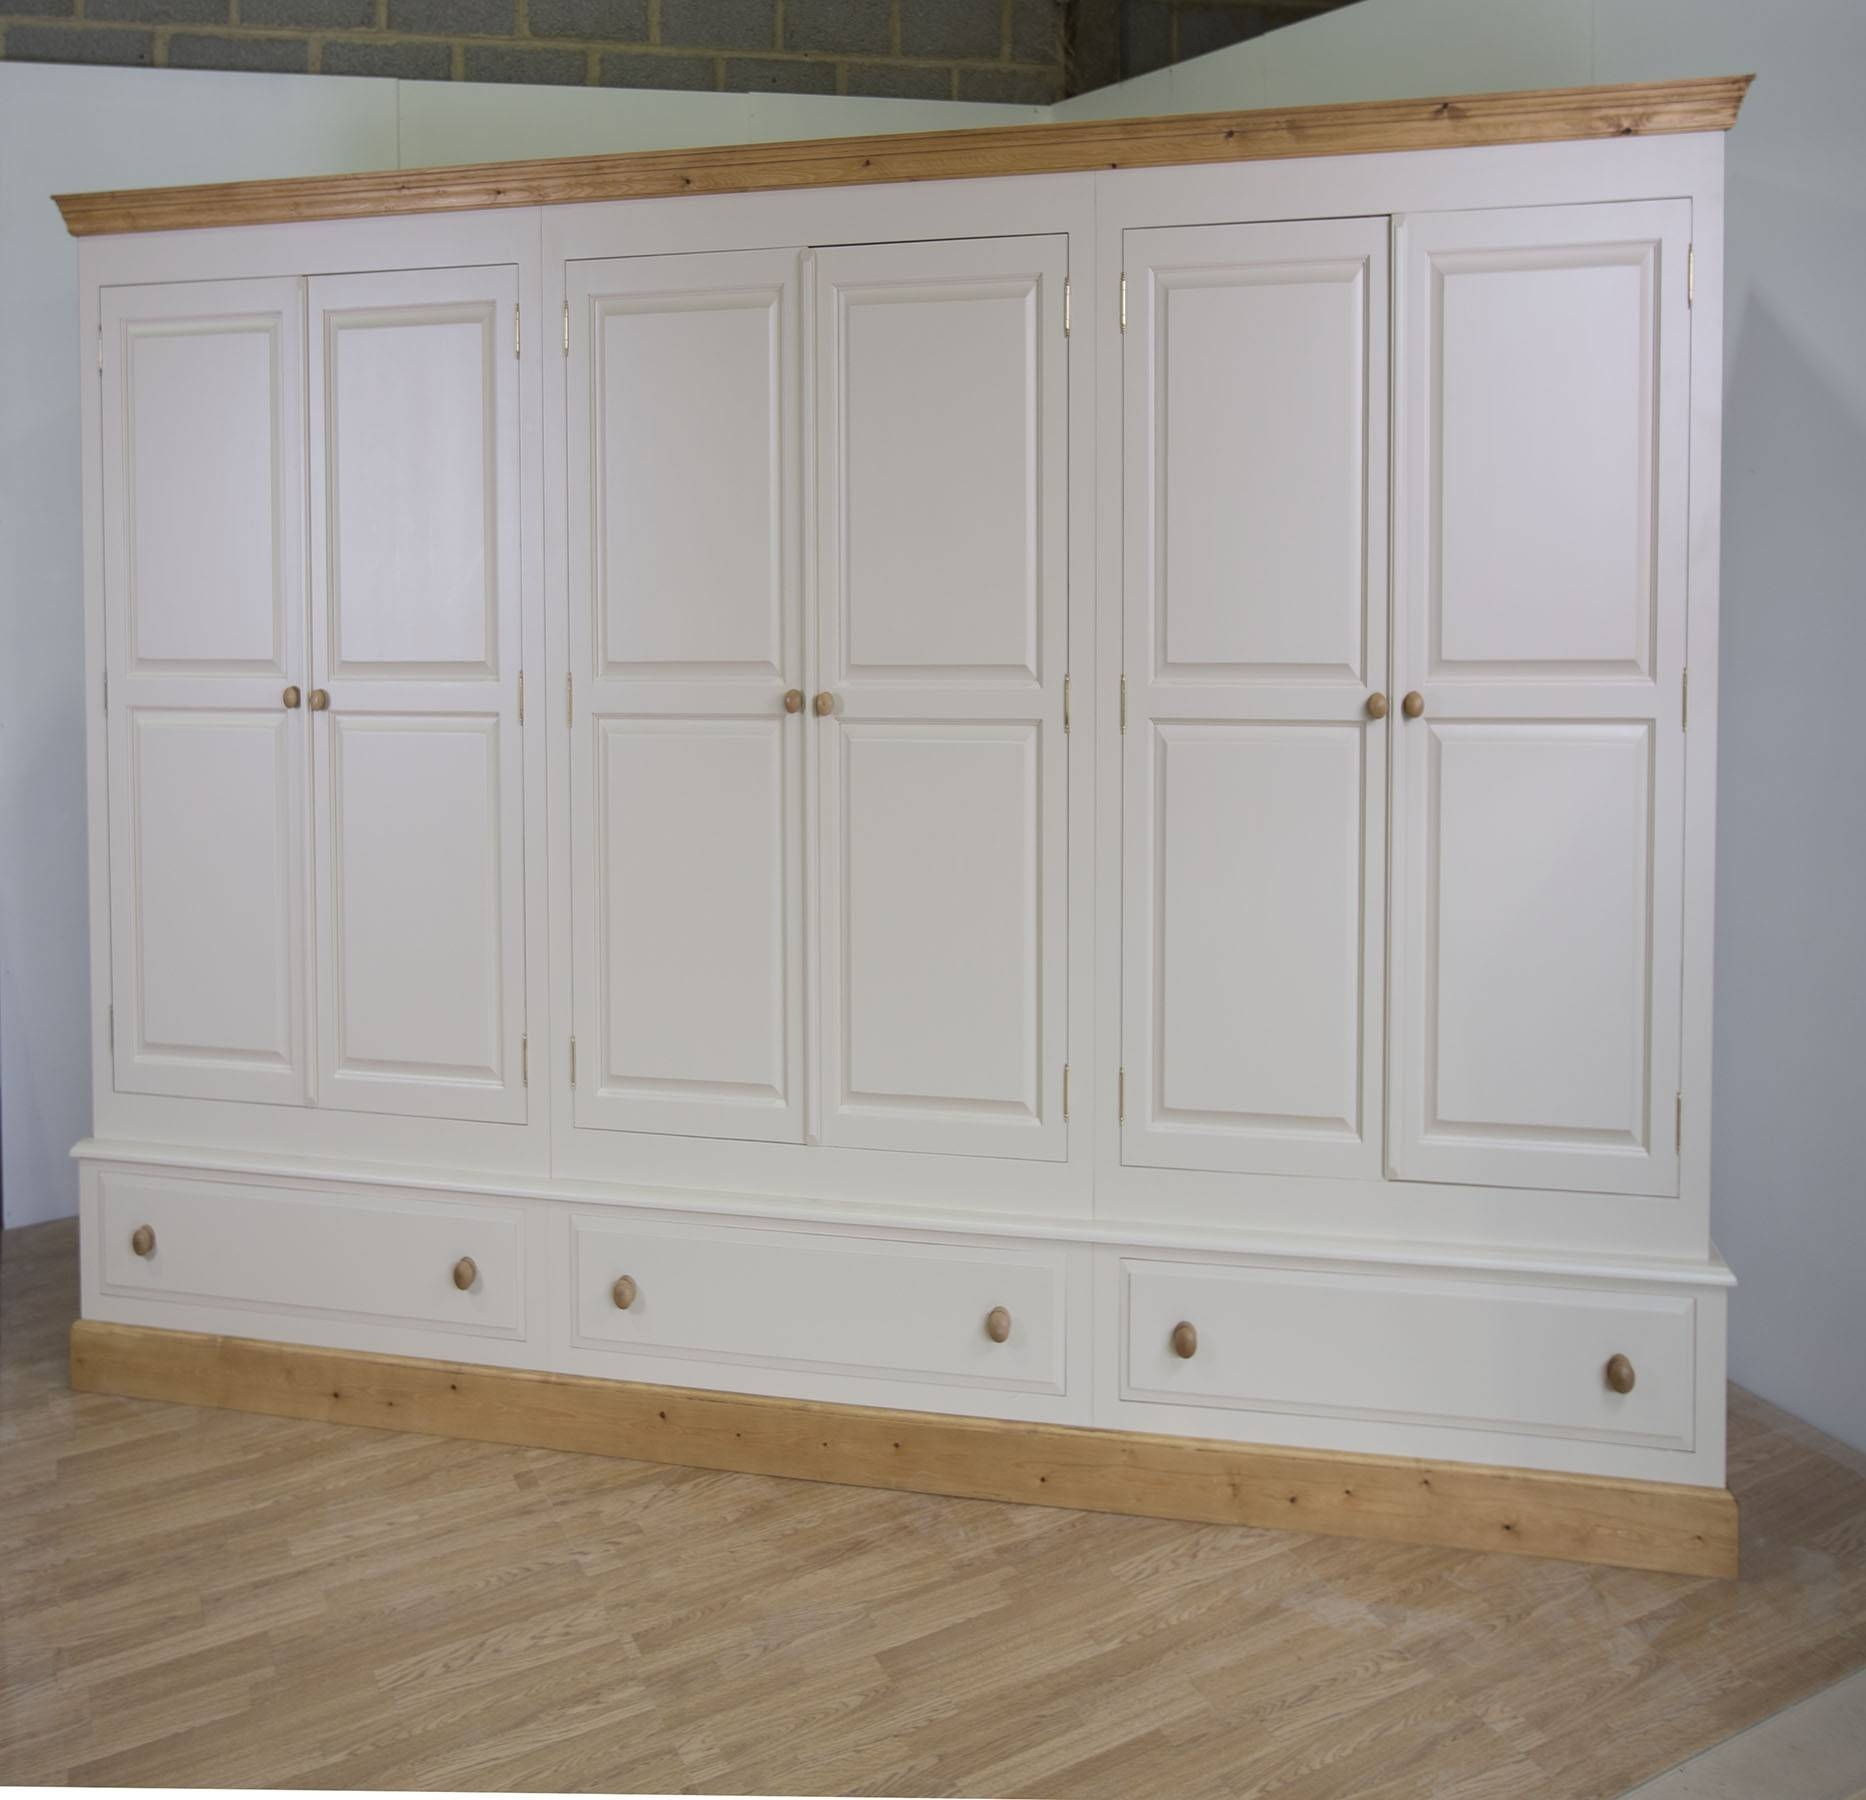 Farrow & Ball Painted Large 6 Door Wardrobe With Drawers inside 6 Door Wardrobes Bedroom Furniture (Image 7 of 15)